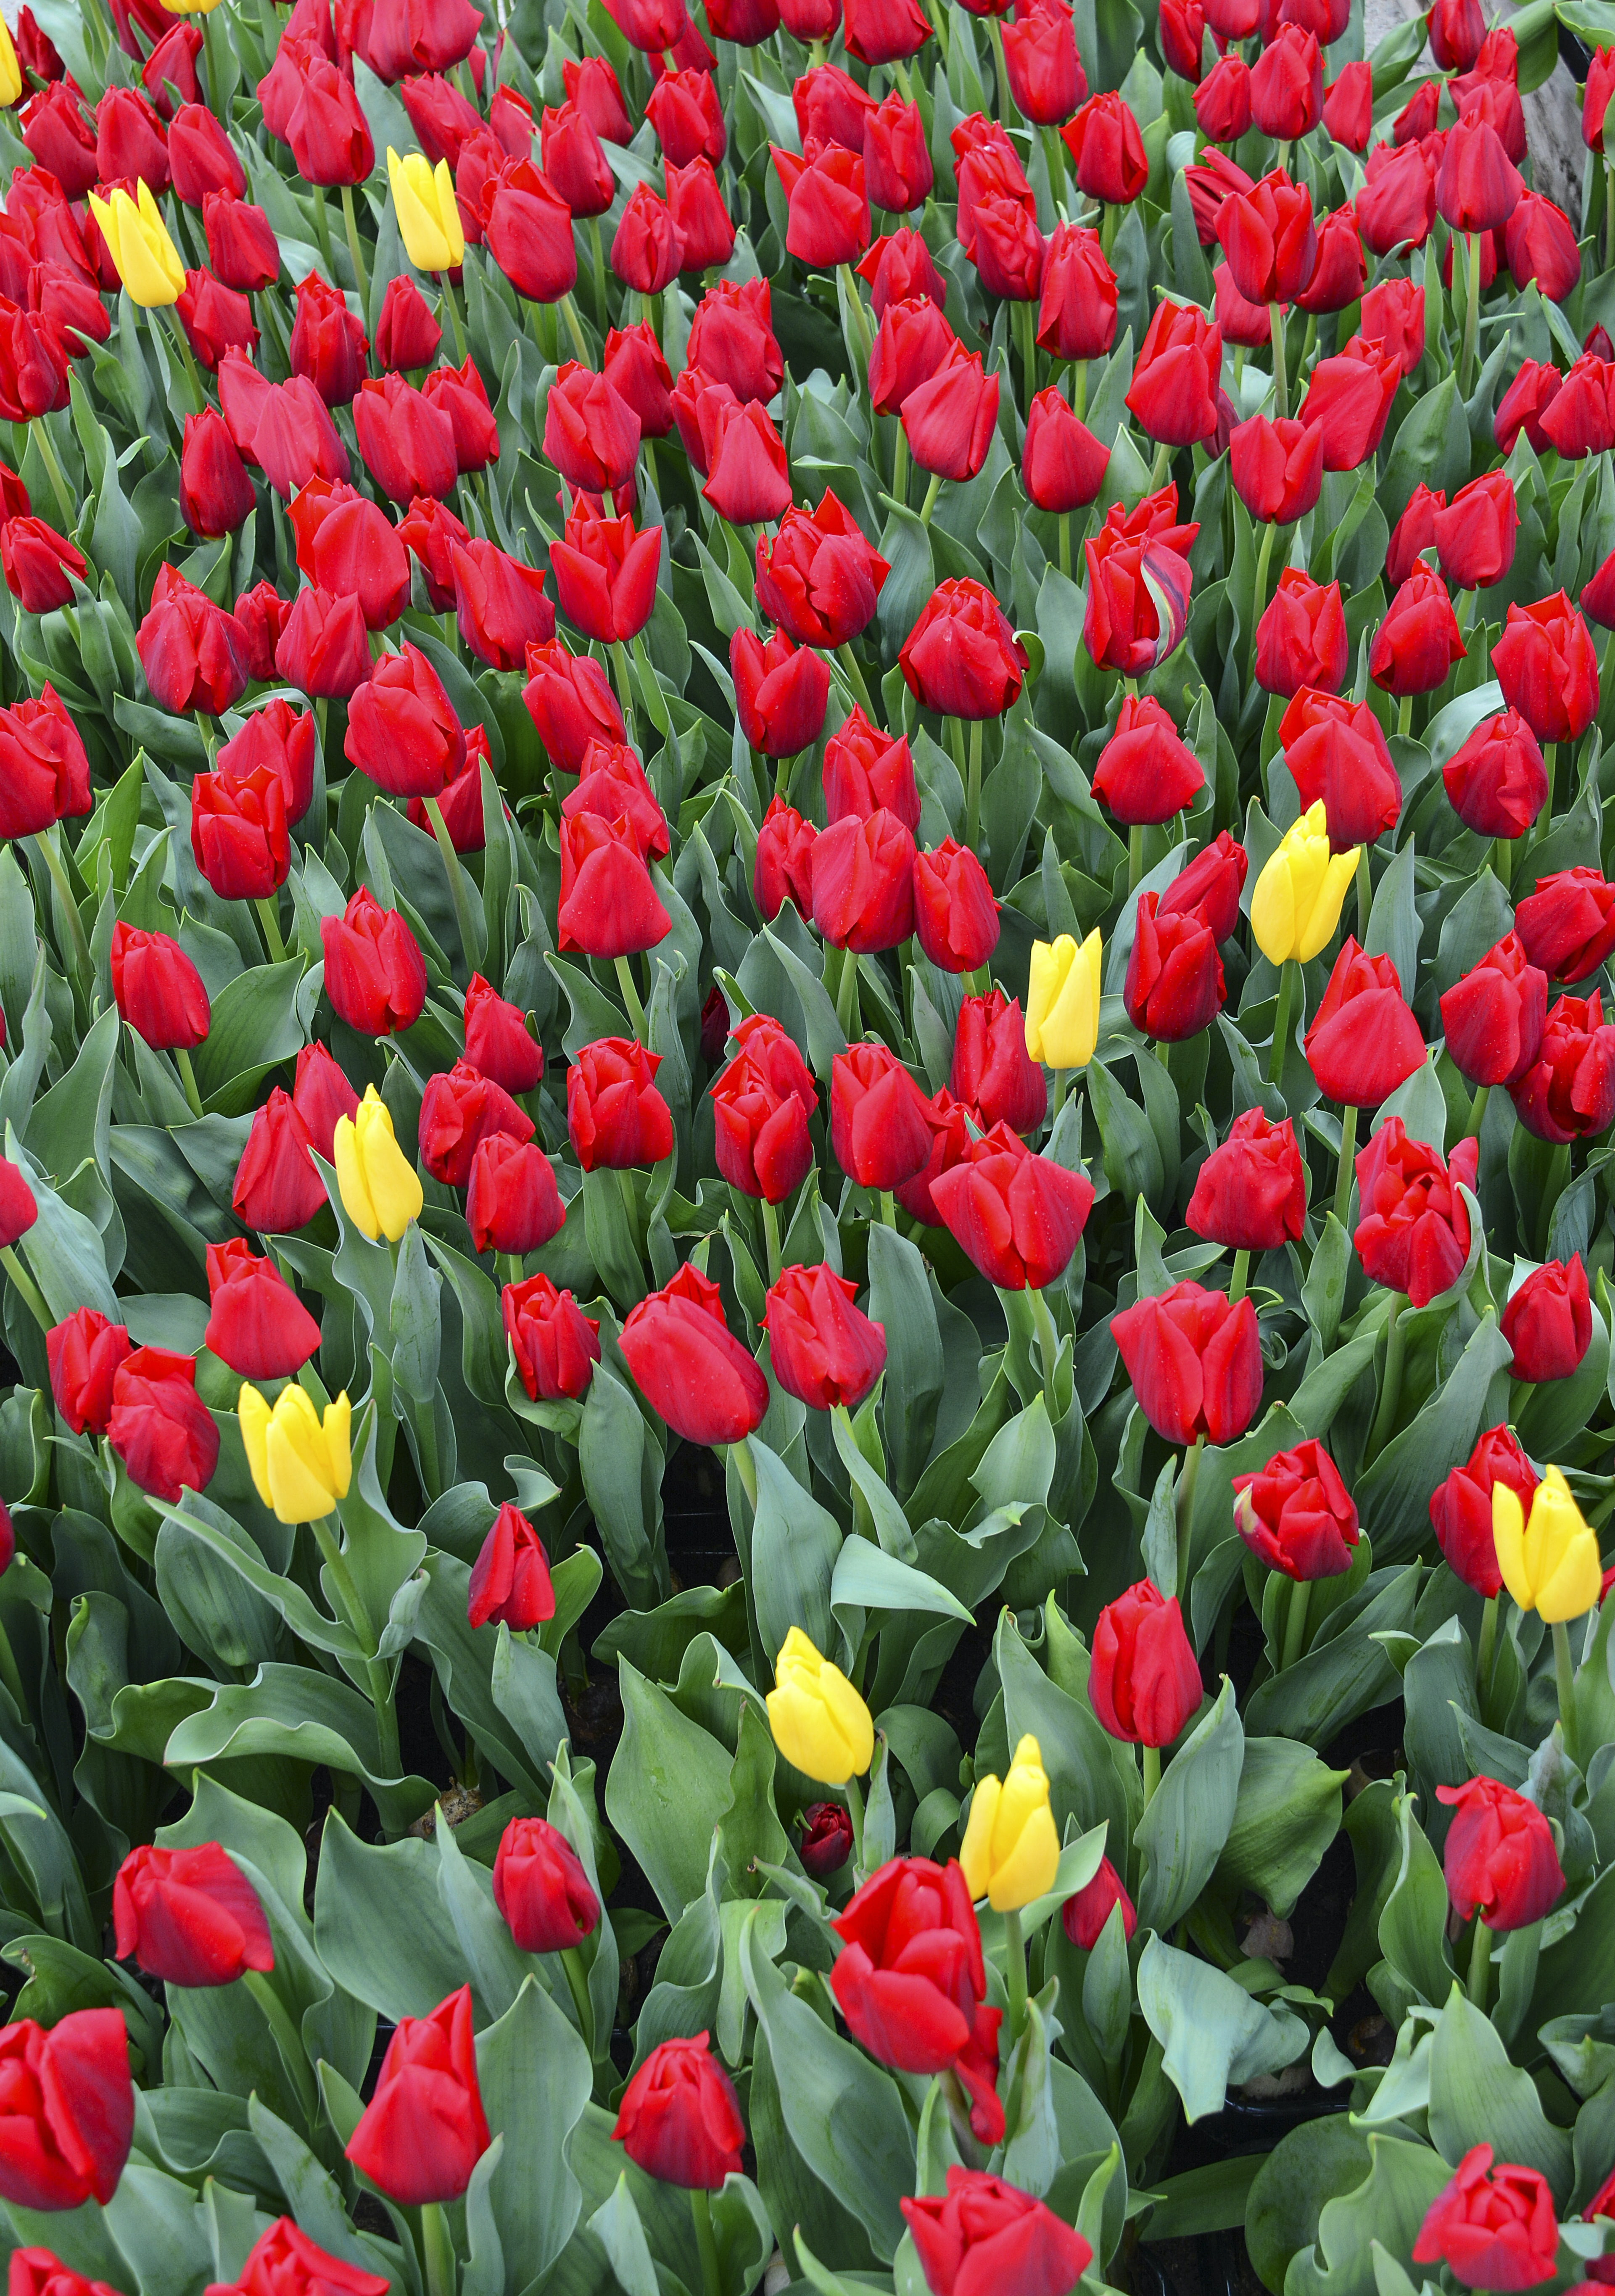 red and yellow tulips under sunny sky